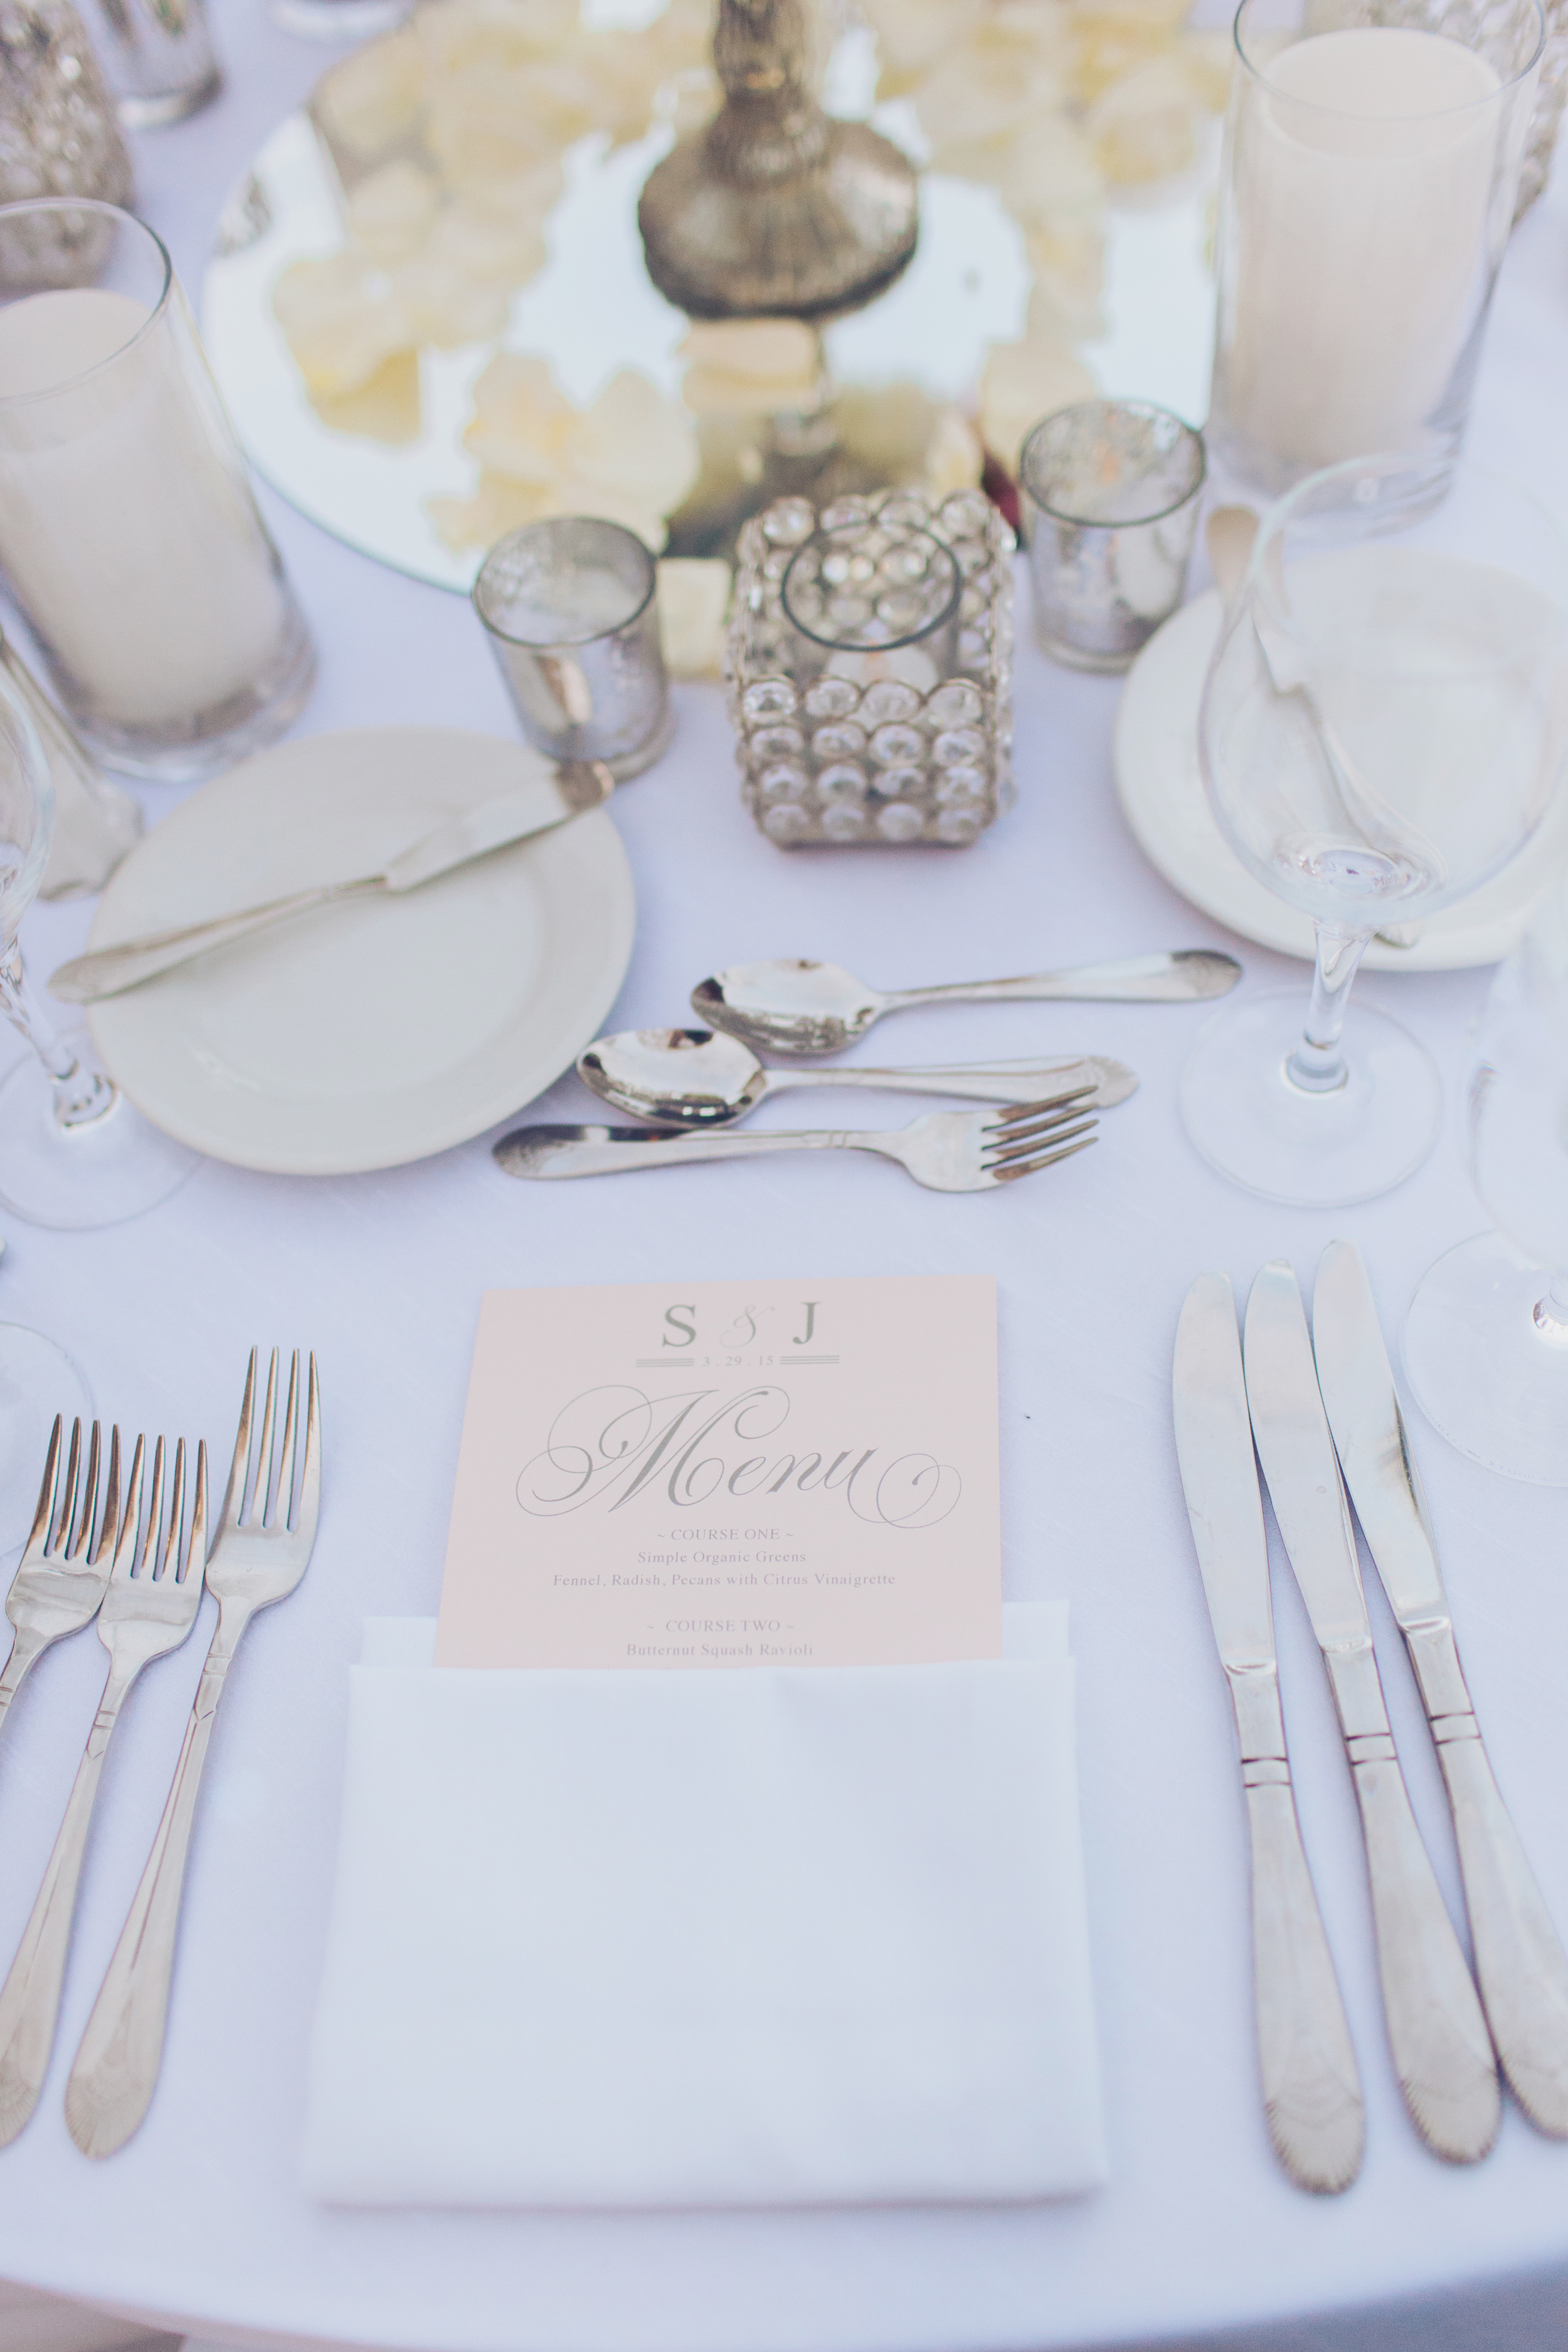 The bride and groom placed their monogram on napkins, menus, table numbers, and even the dance floor. I love the blush menus and the properly set table.  Las Vegas Wedding Planner Andrea Eppolito   Wedding at Lake Las Vegas   White and Blu  sh and Grey Wedding   Luxury Wedding Las Vegas